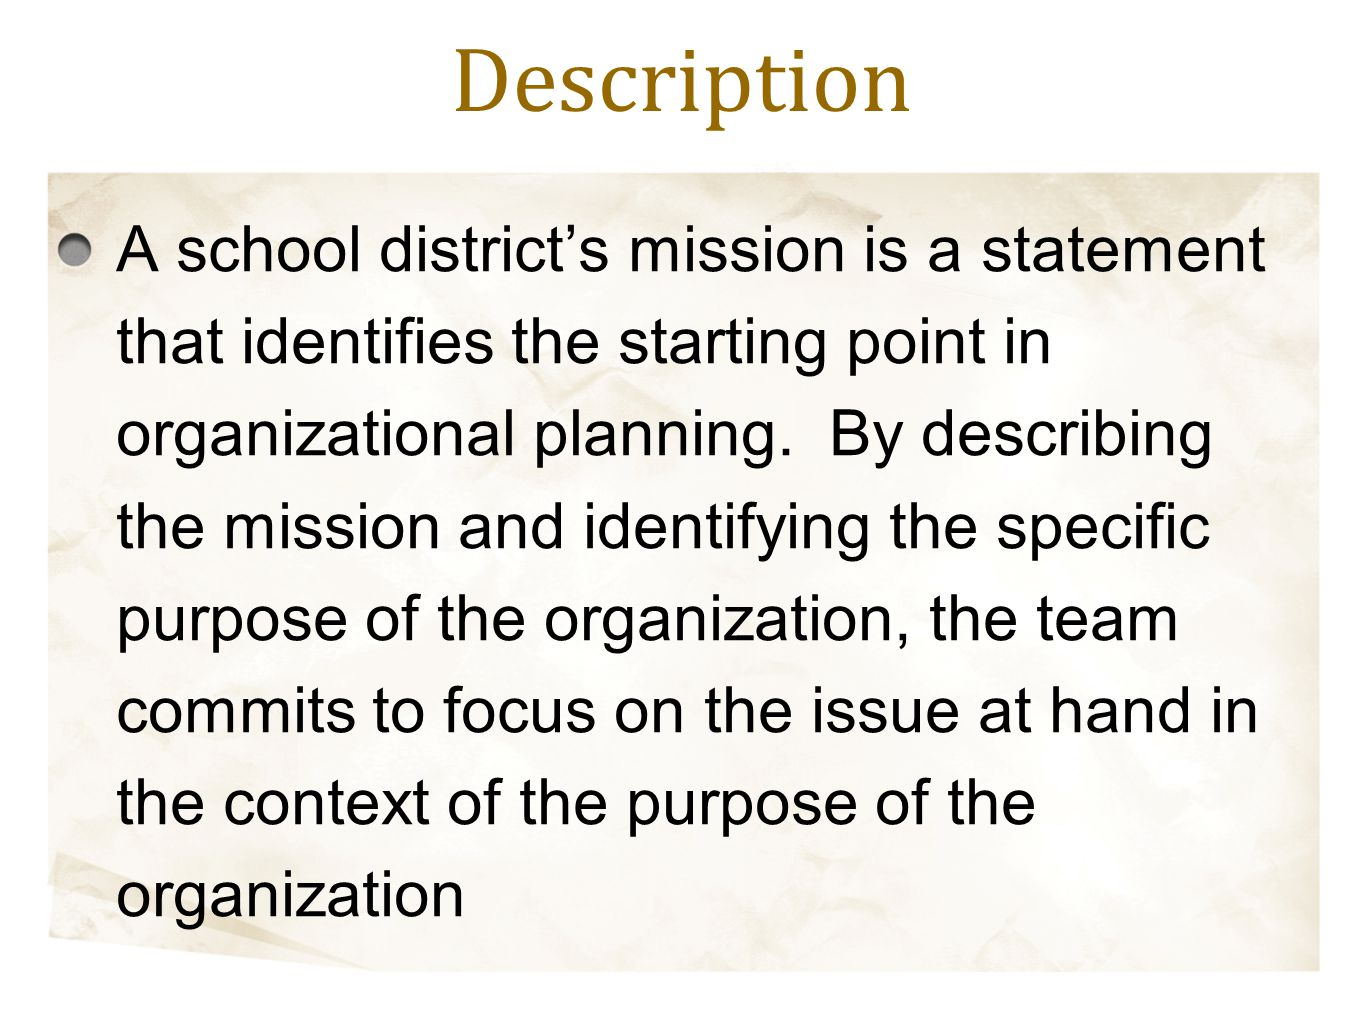 A school district's mission is a statement that identifies the starting point in organizational planning. By describing the mission and identifying th